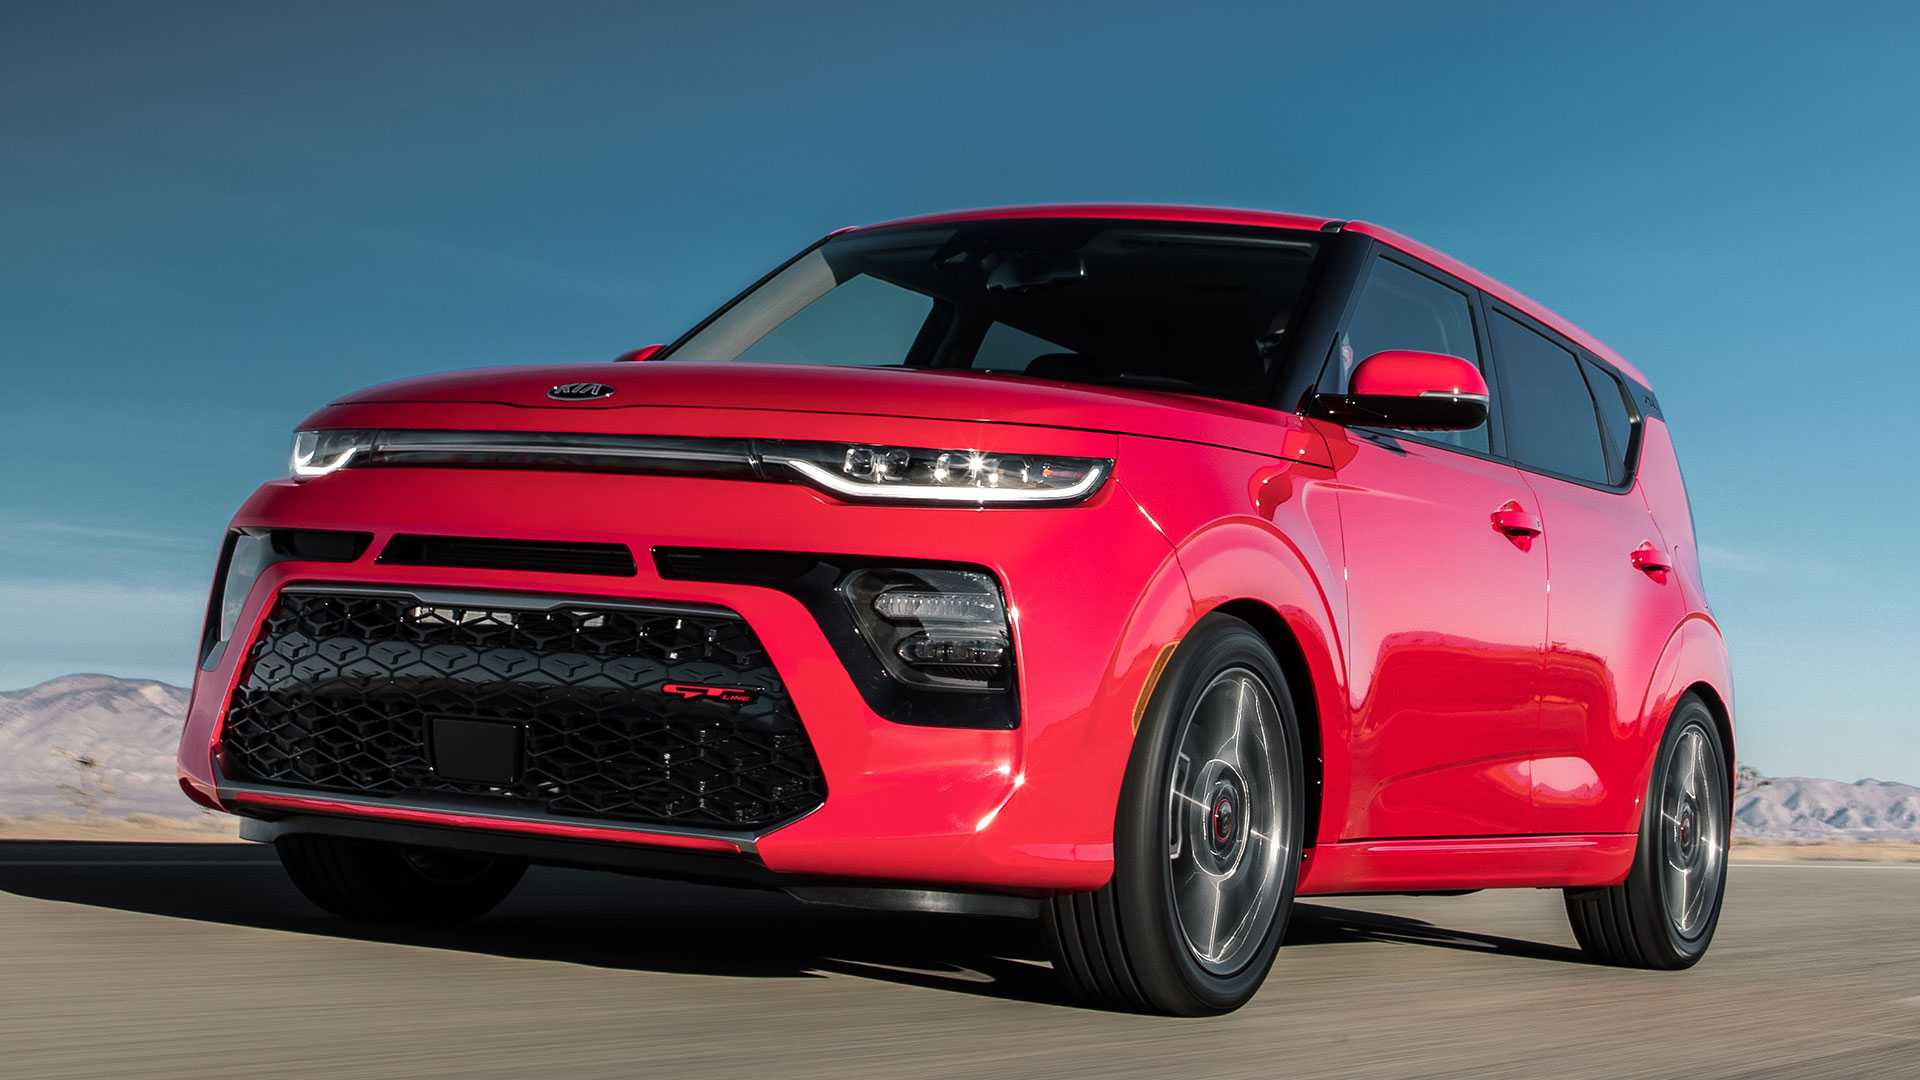 2020 Kia Soul Gt-Line First Drive: Funky Goes Further - 2022 Kia Soul Gt-Line Gas Mileage, Cargo Space, Release Date